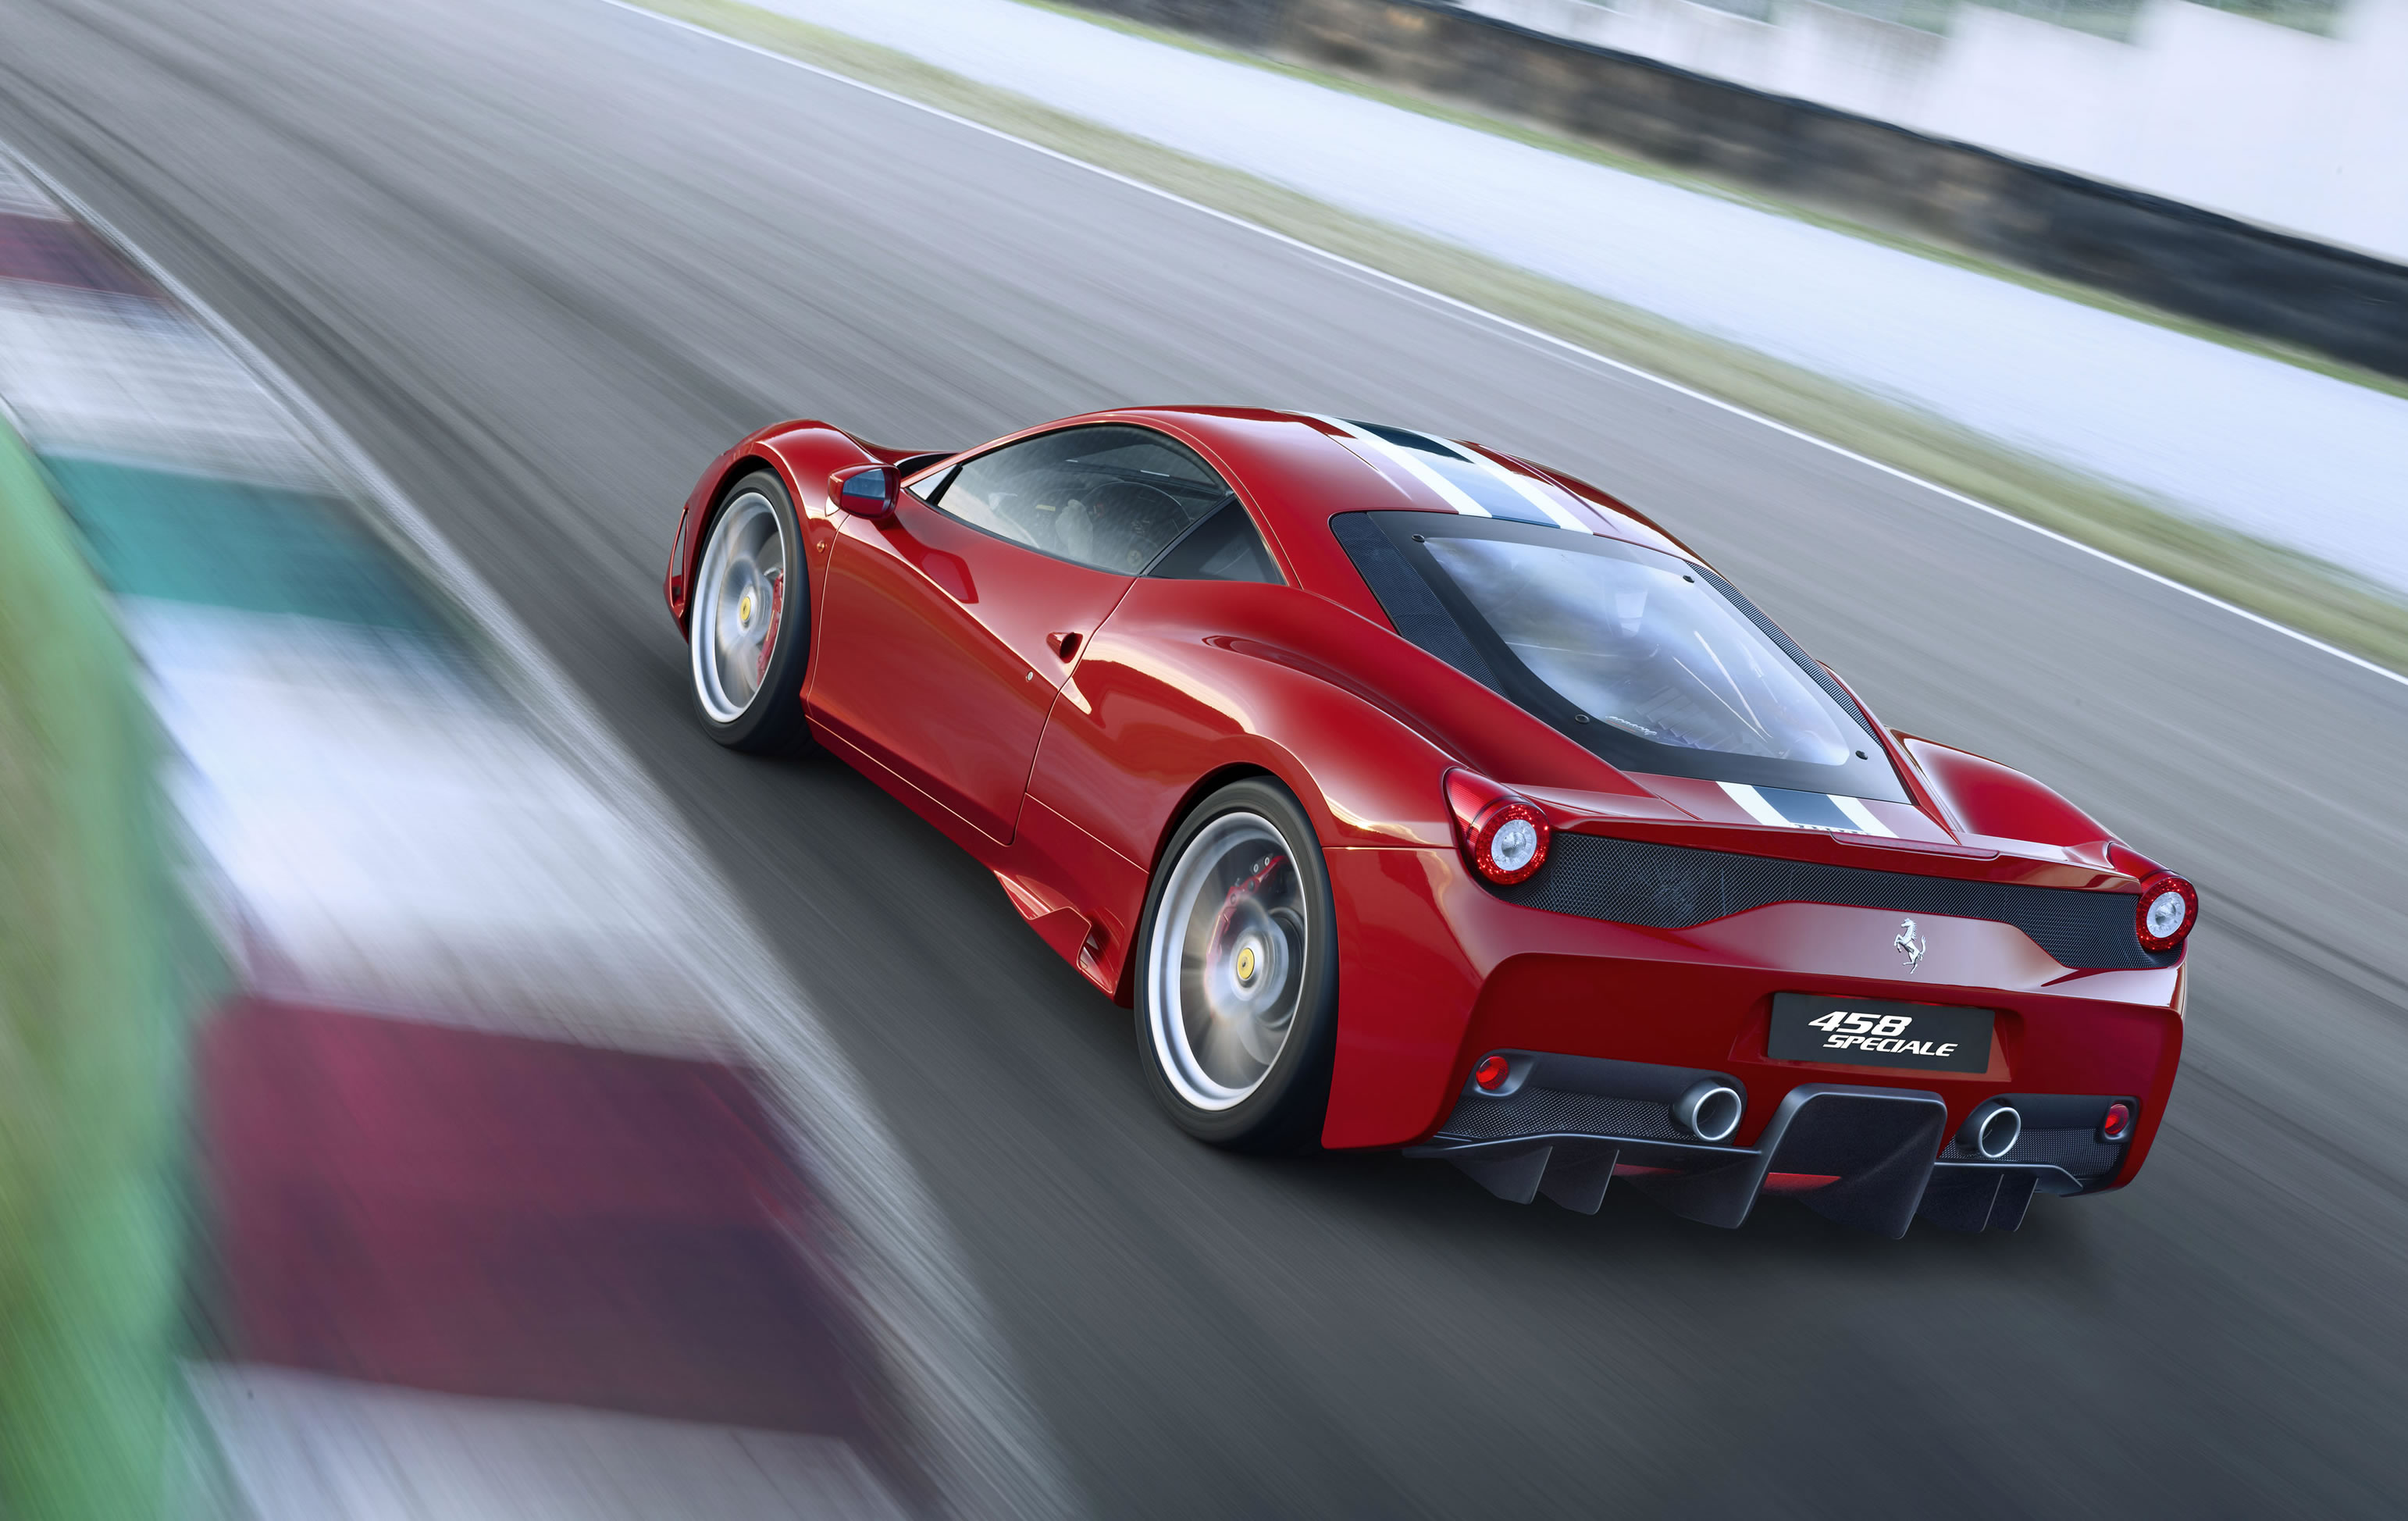 2014 ferrari 458 speciale photos specs and review rs the 458 speciale features front and rear movable aerodynamics which balance downforce and cut drag vanachro Image collections